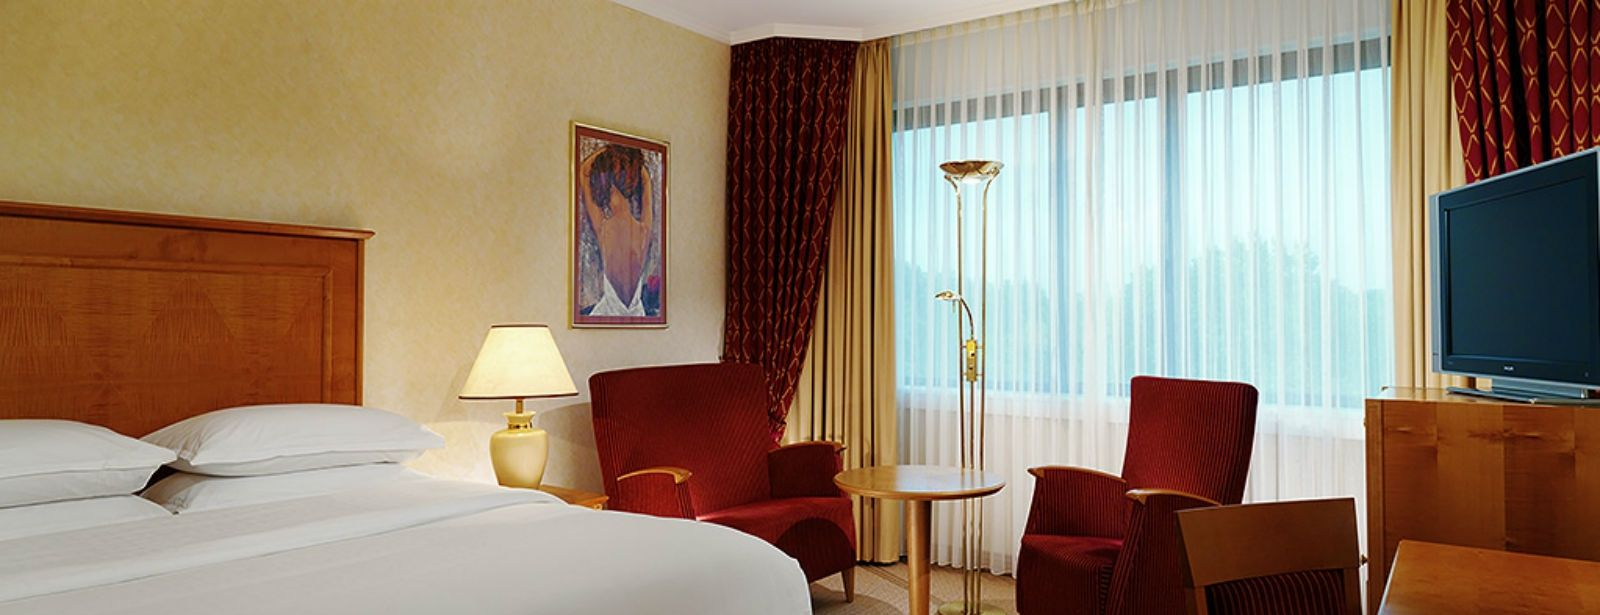 Superior City View Room | Sheraton Essen Hotel